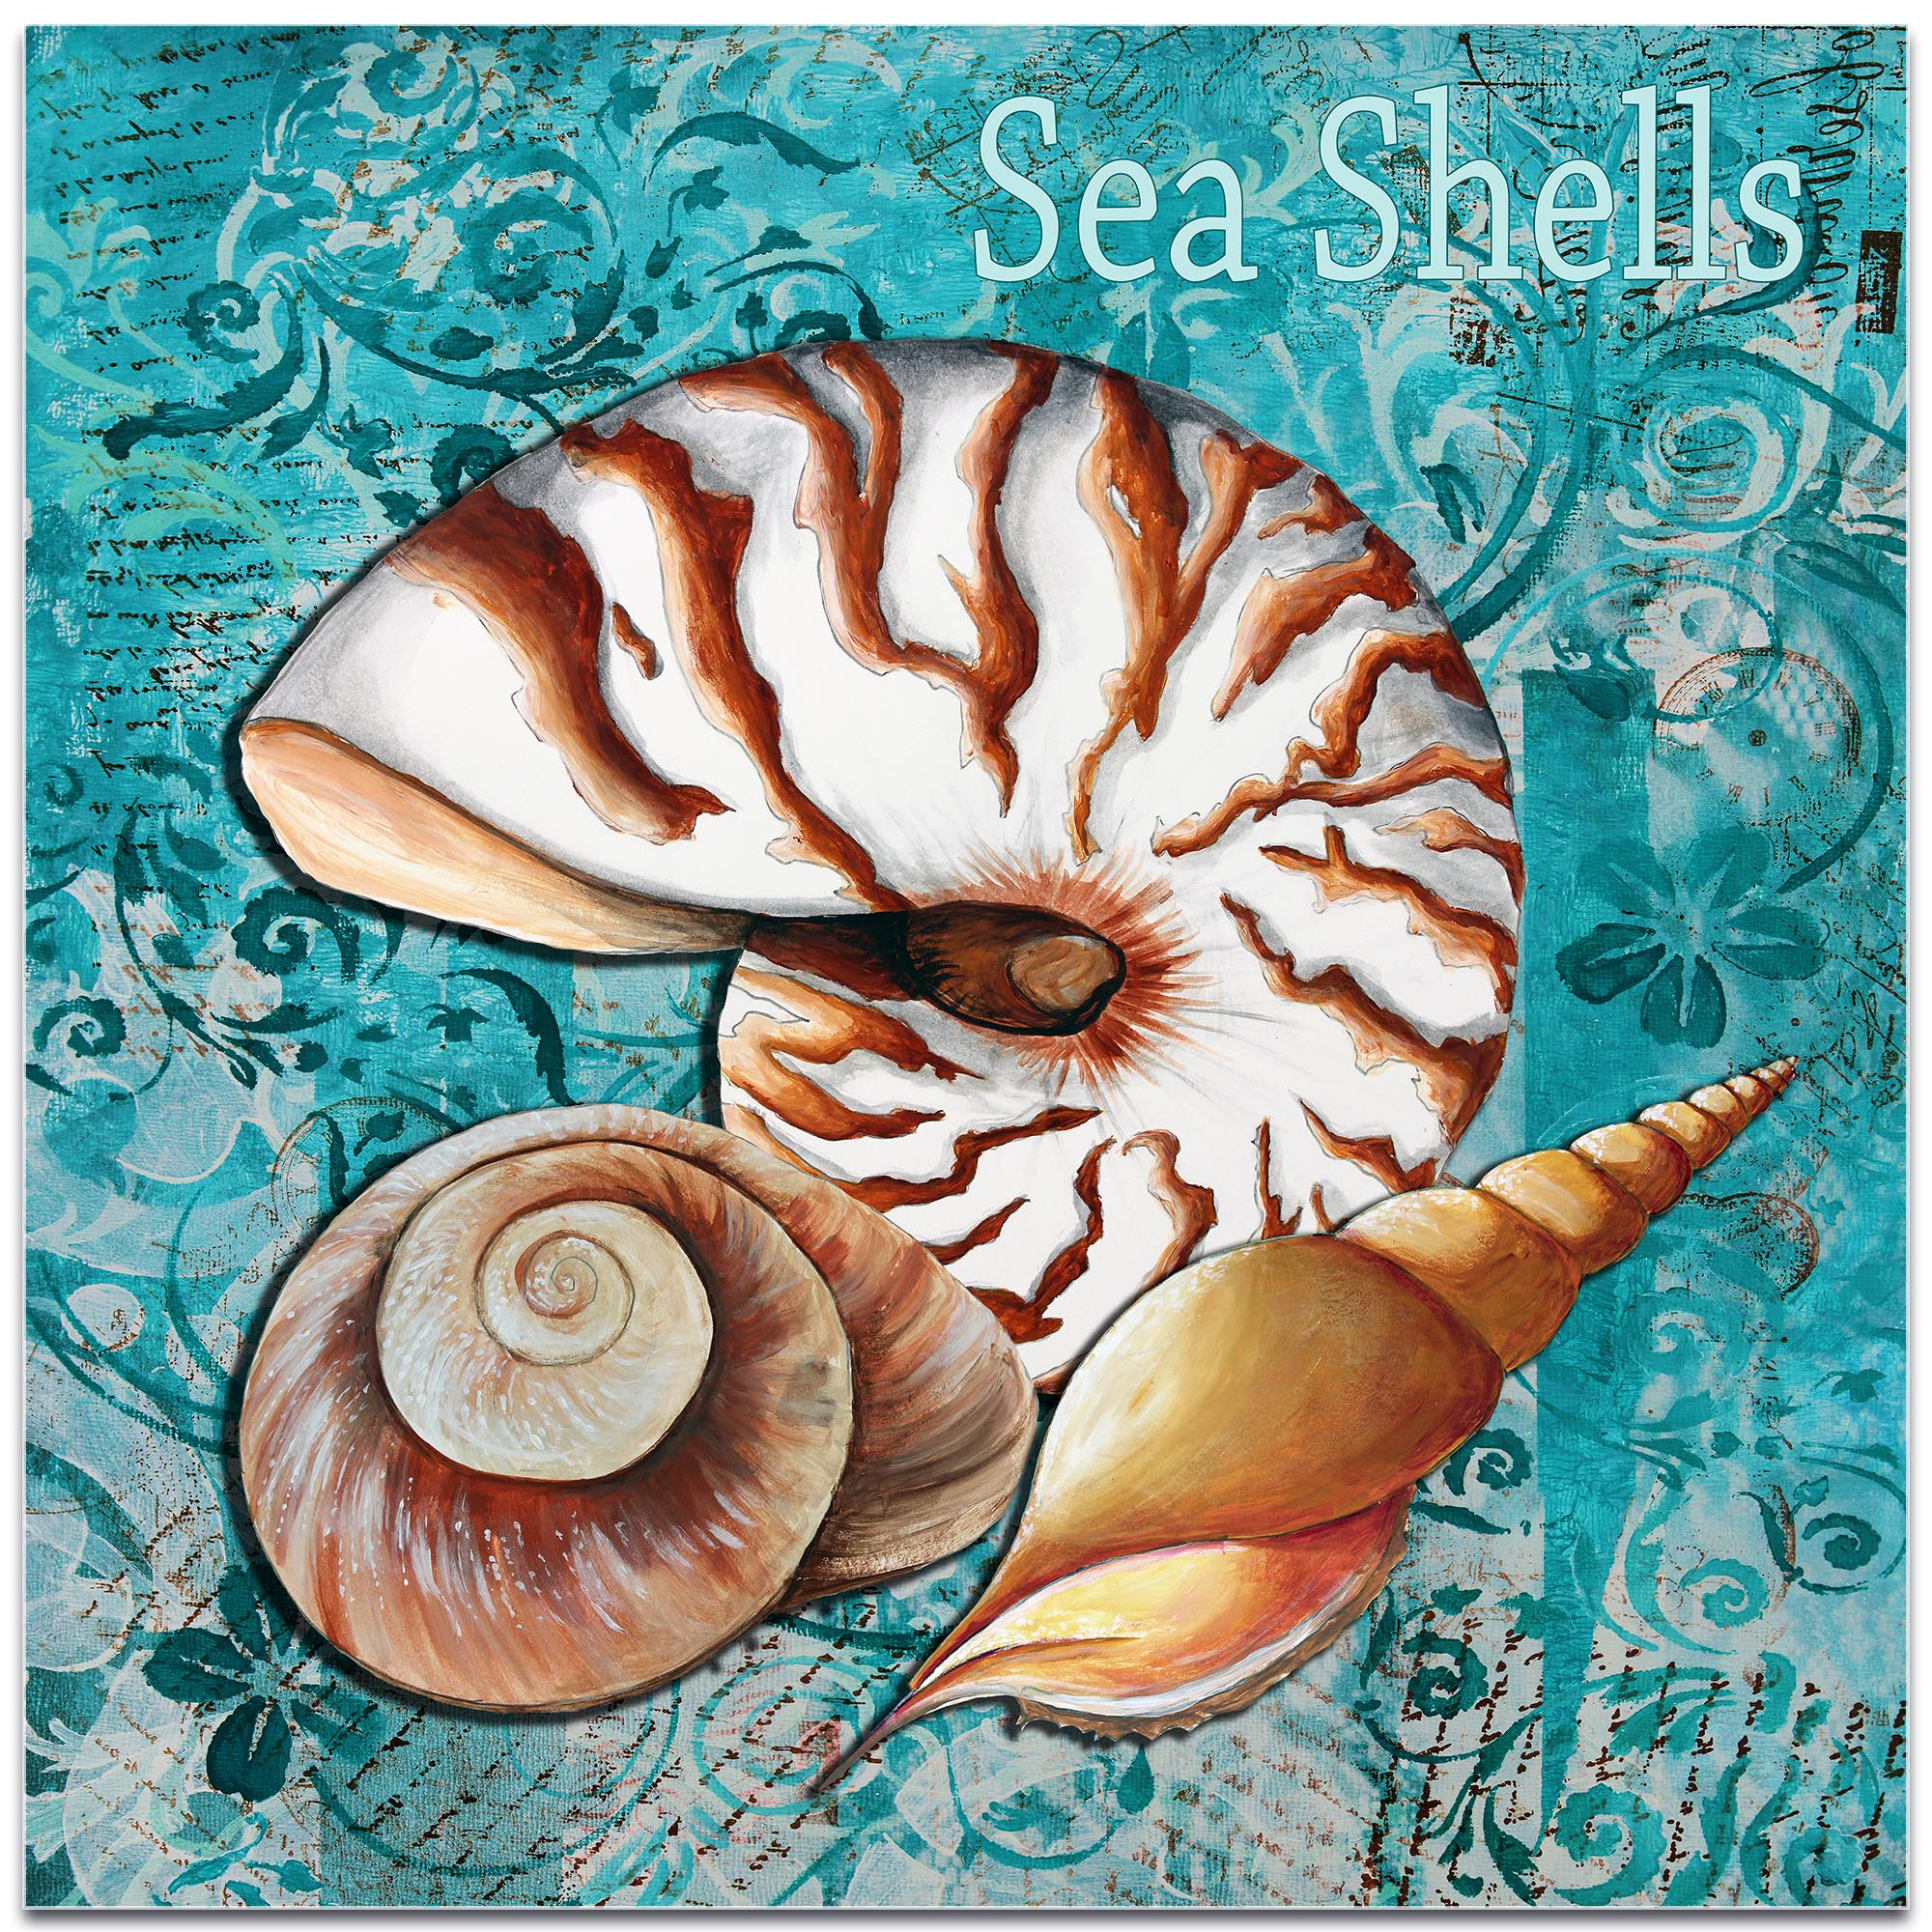 Beach Decor 'Sea Shells' - Coastal Bathroom Art on Metal or Acrylic - Image 2